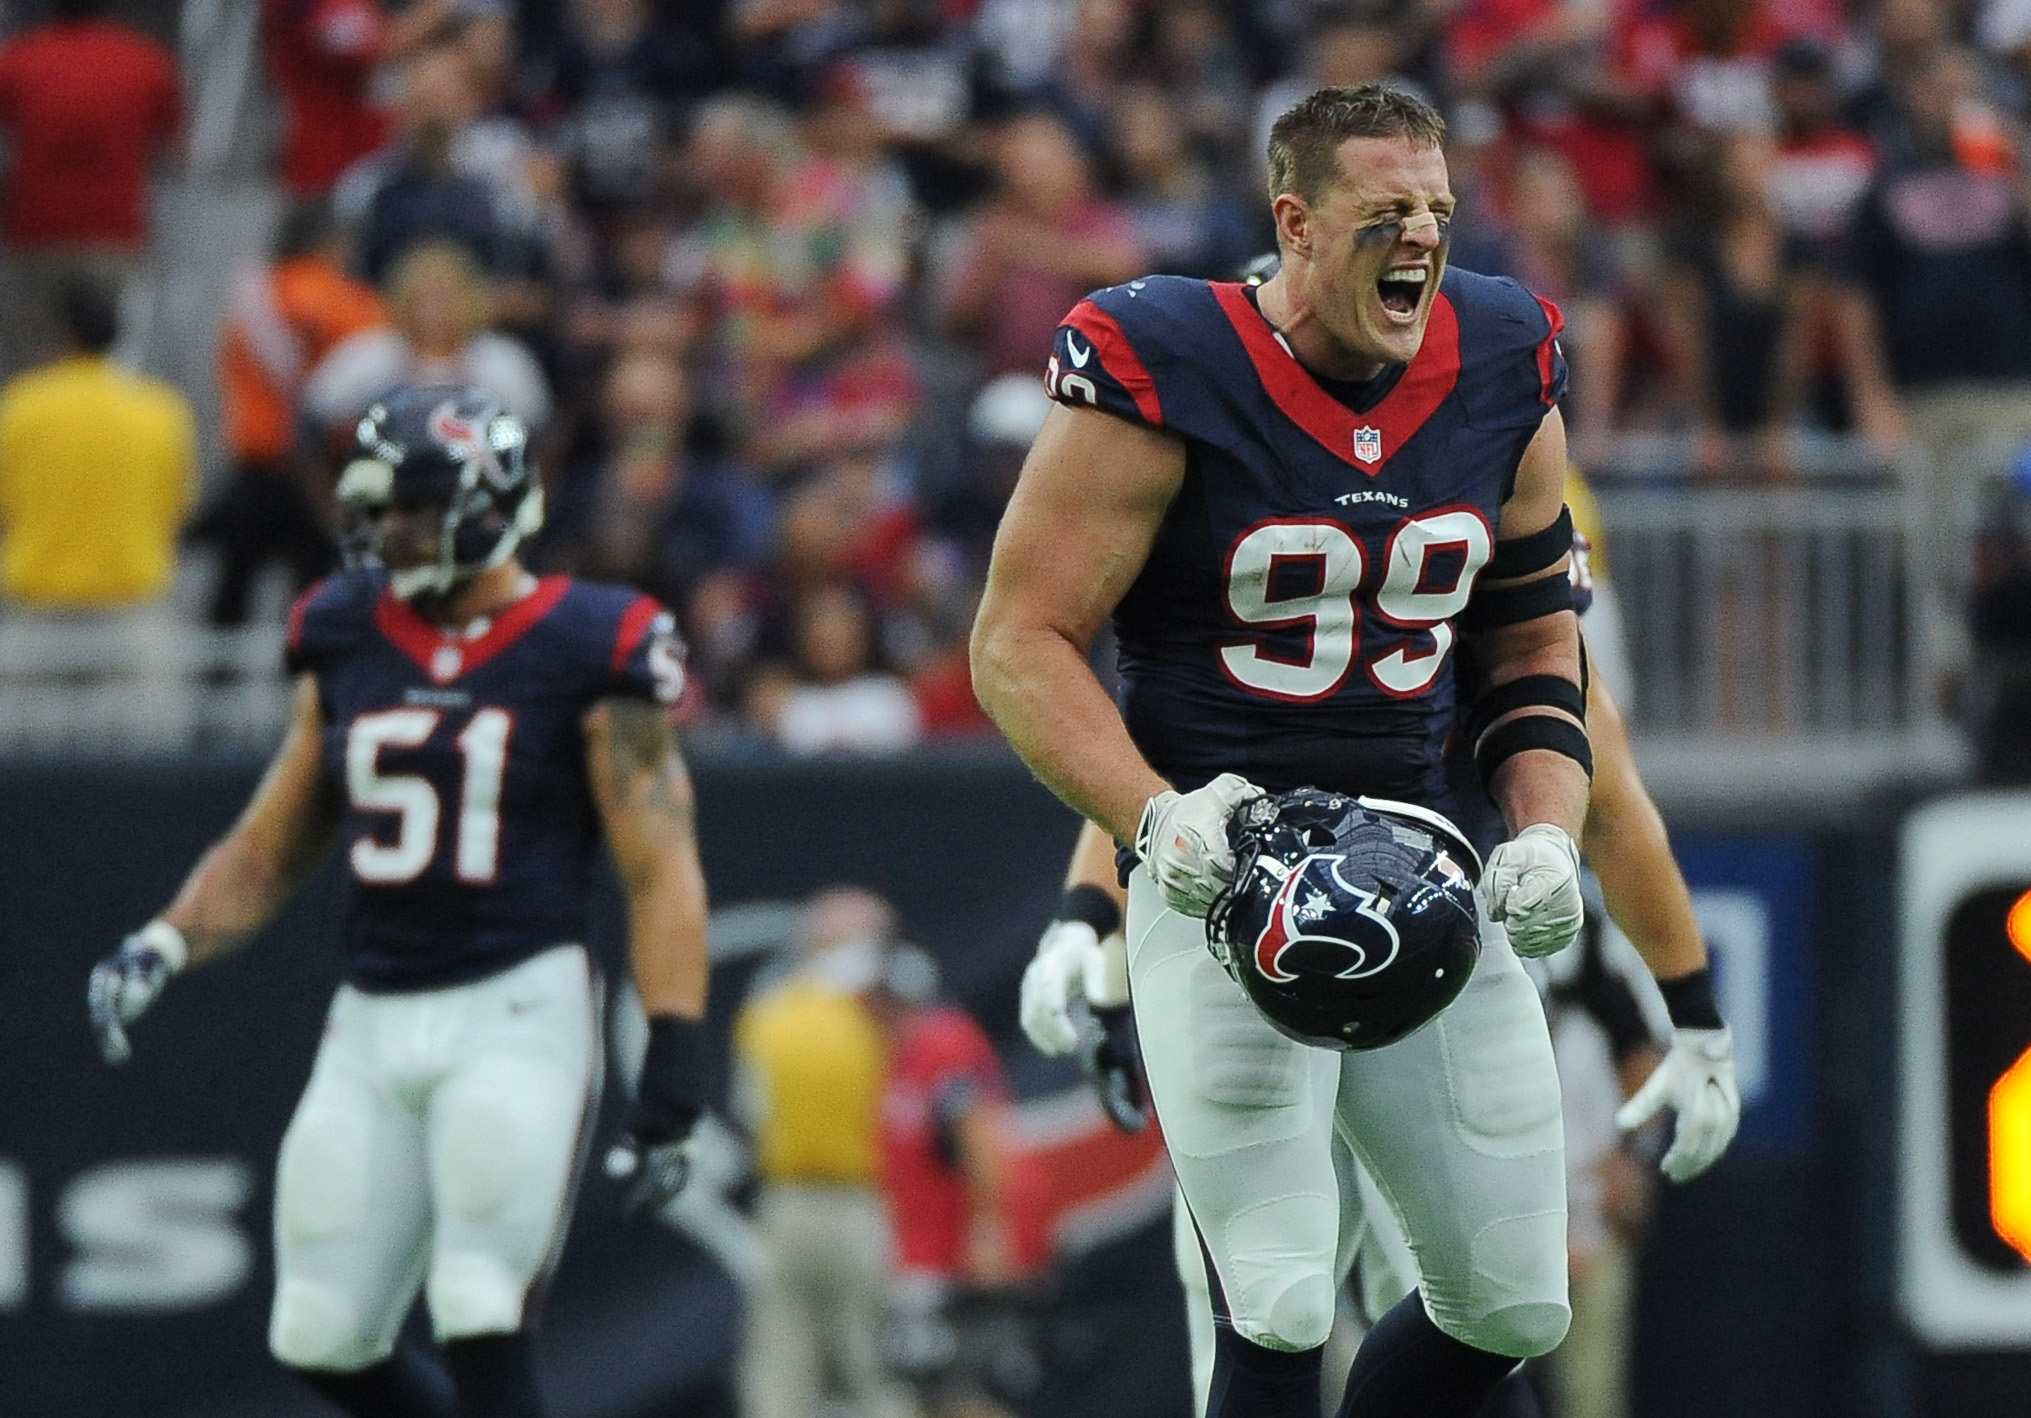 J.J. Watt Not For Long in NFL 2016 images